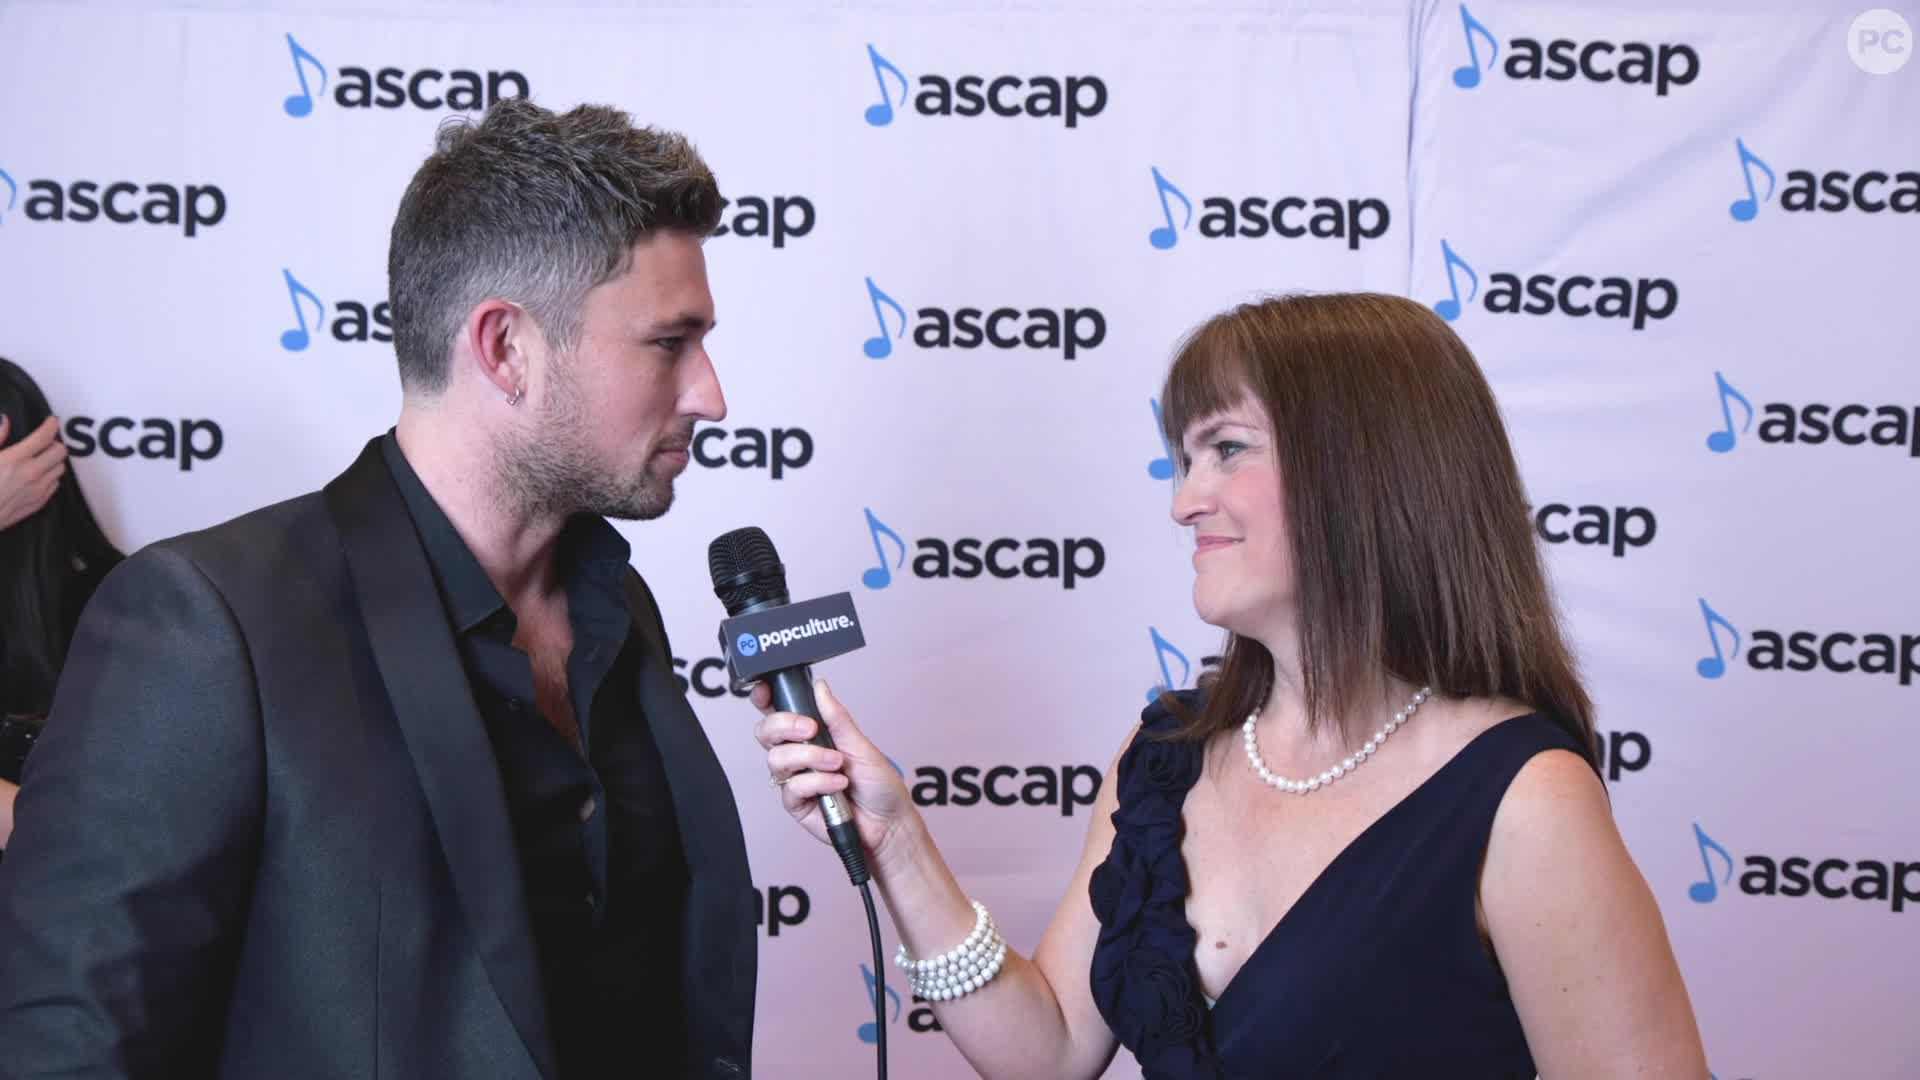 Michael Ray - 2019 ASCAP Awards Ceremony screen capture